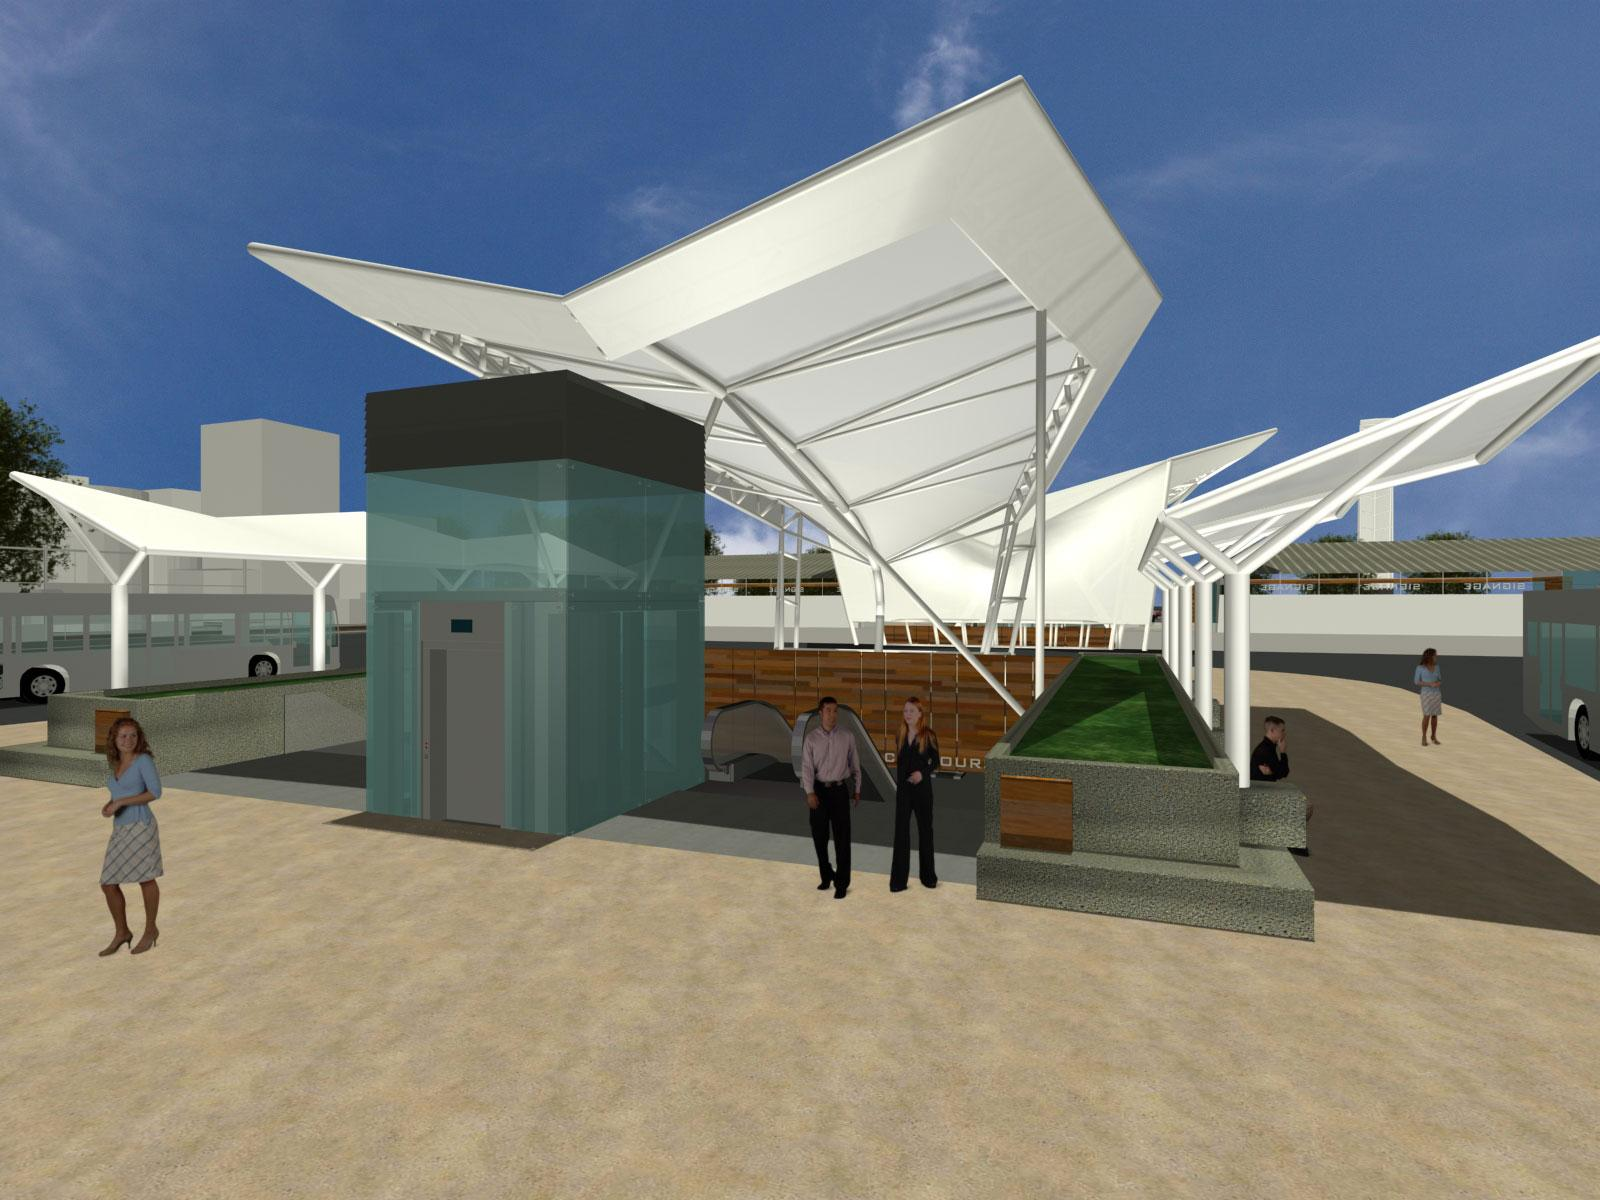 A Linear Approach To Fabric Membrane Roof Design Fabritec Structures